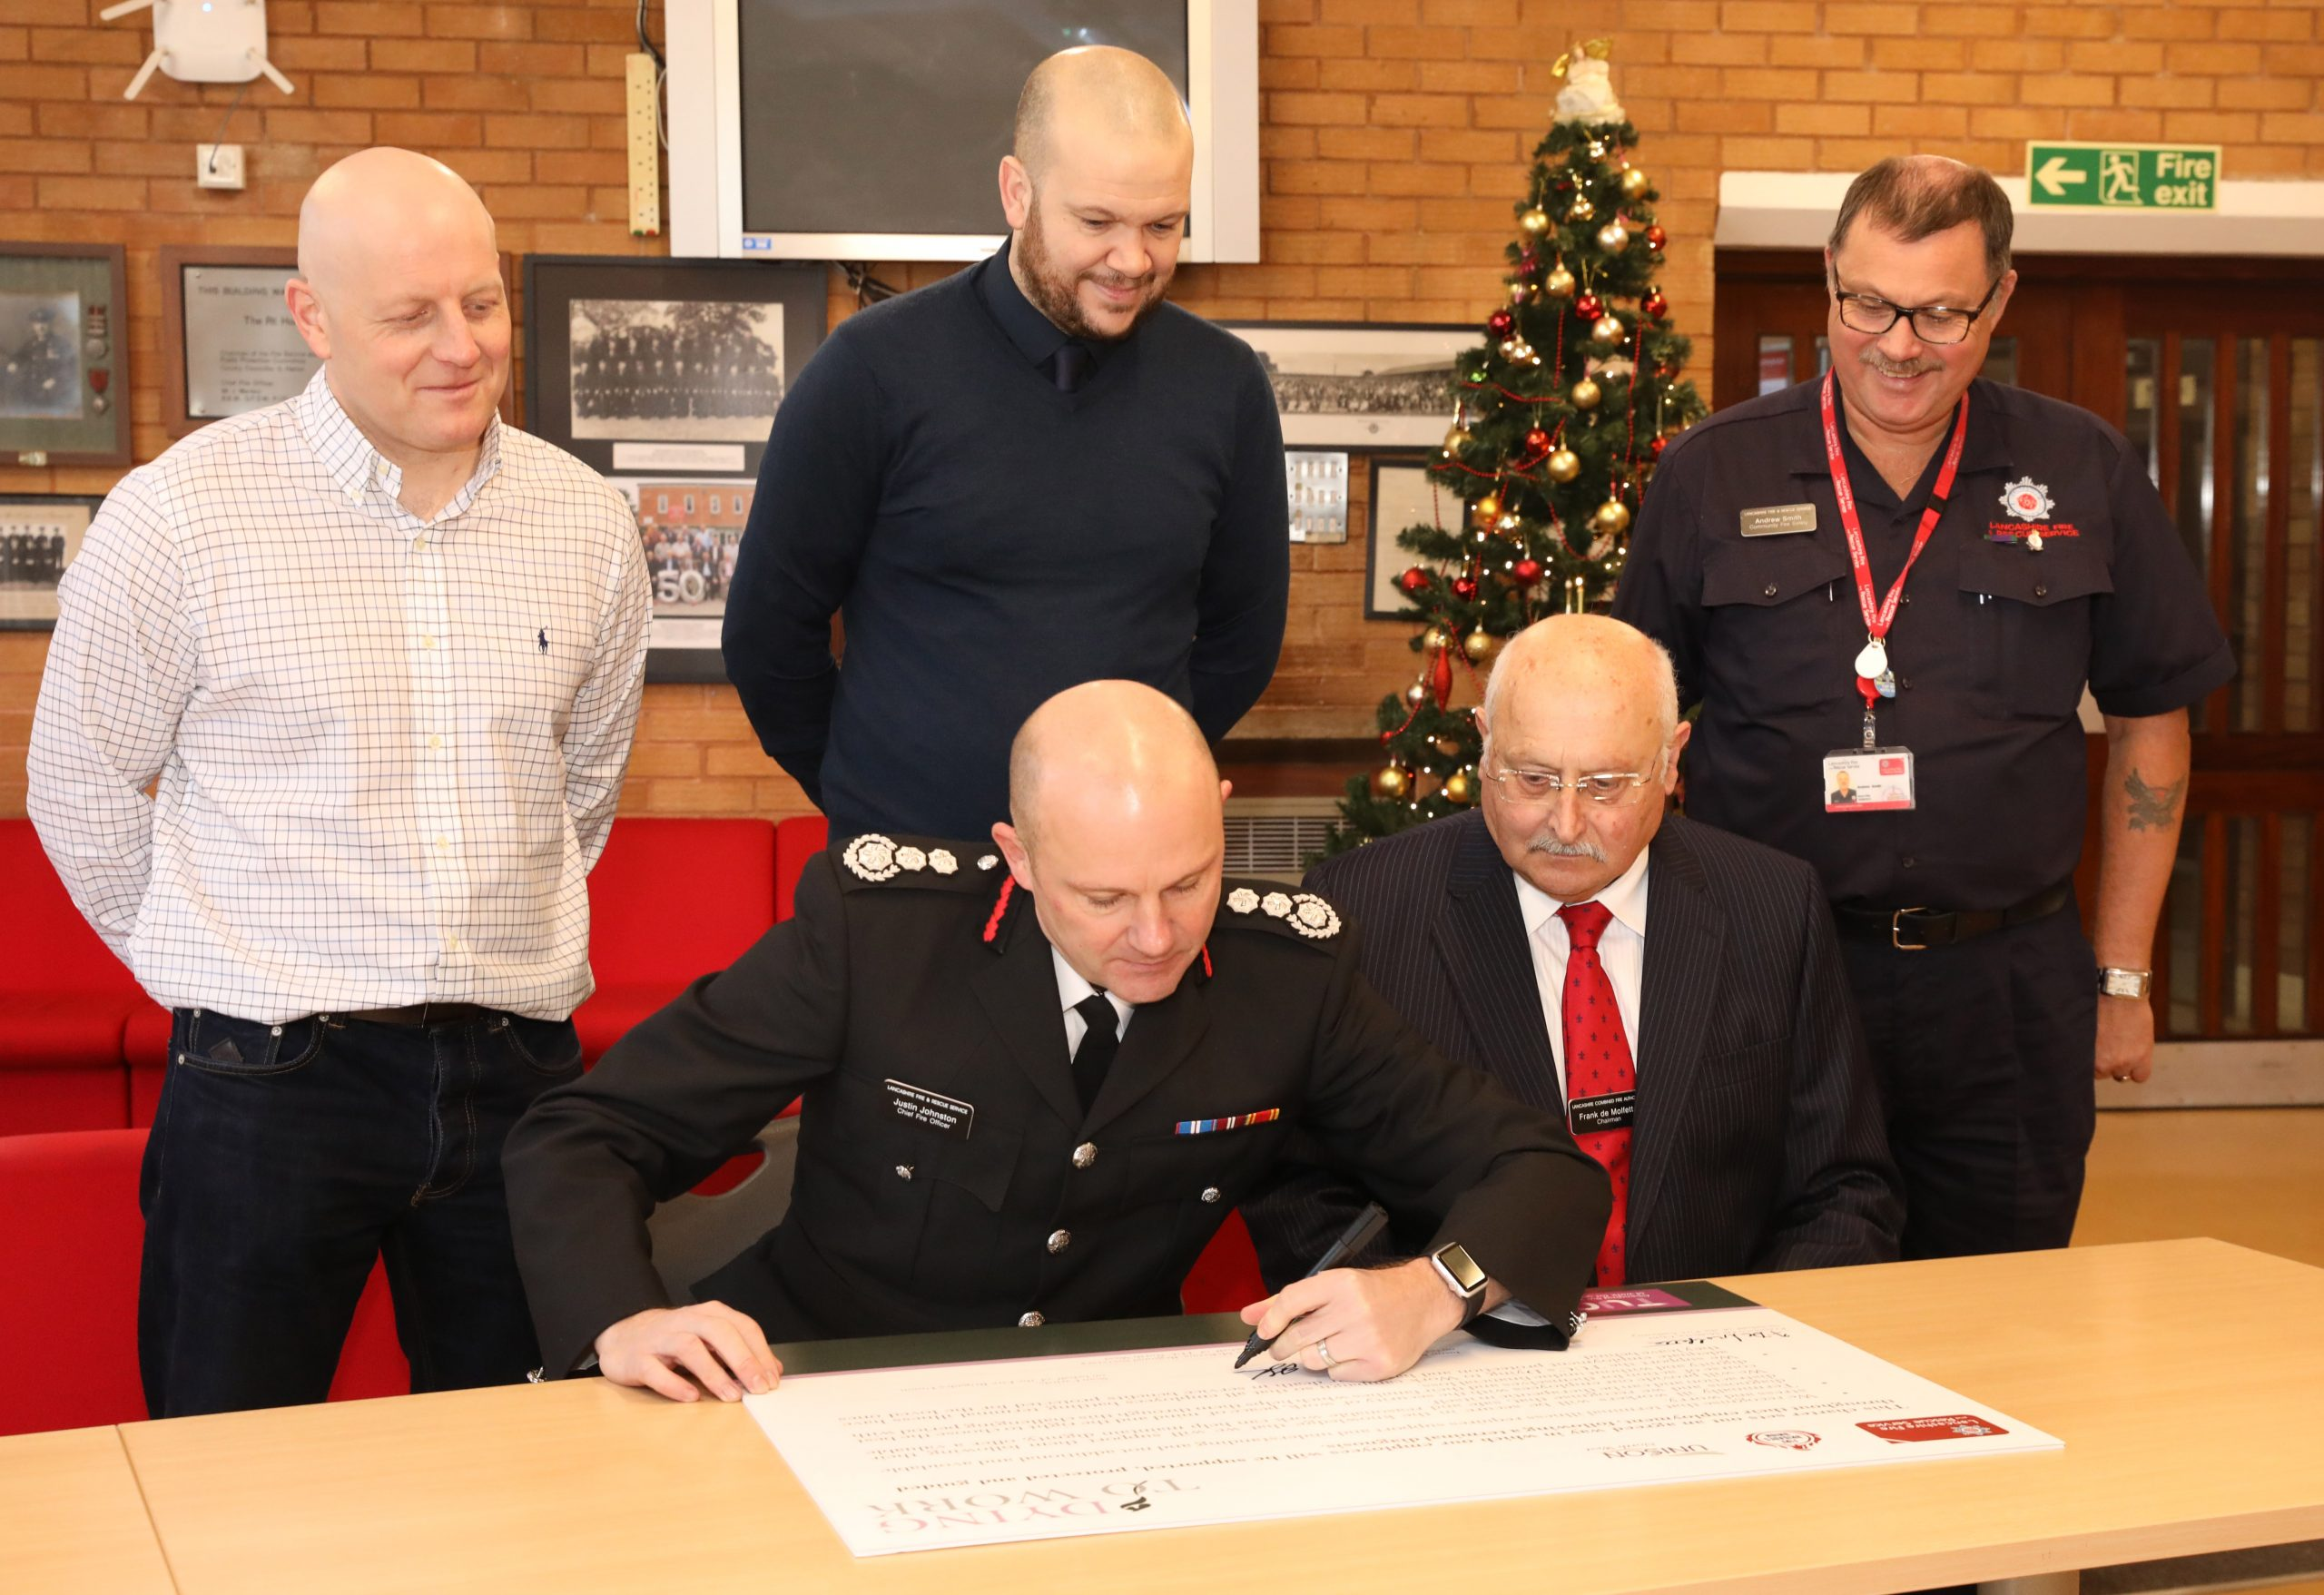 Justin Johnston, Frank de Molfetta, Andrew Smith, Sean Carlisle and TUC representative signing the Dying to Work Charter